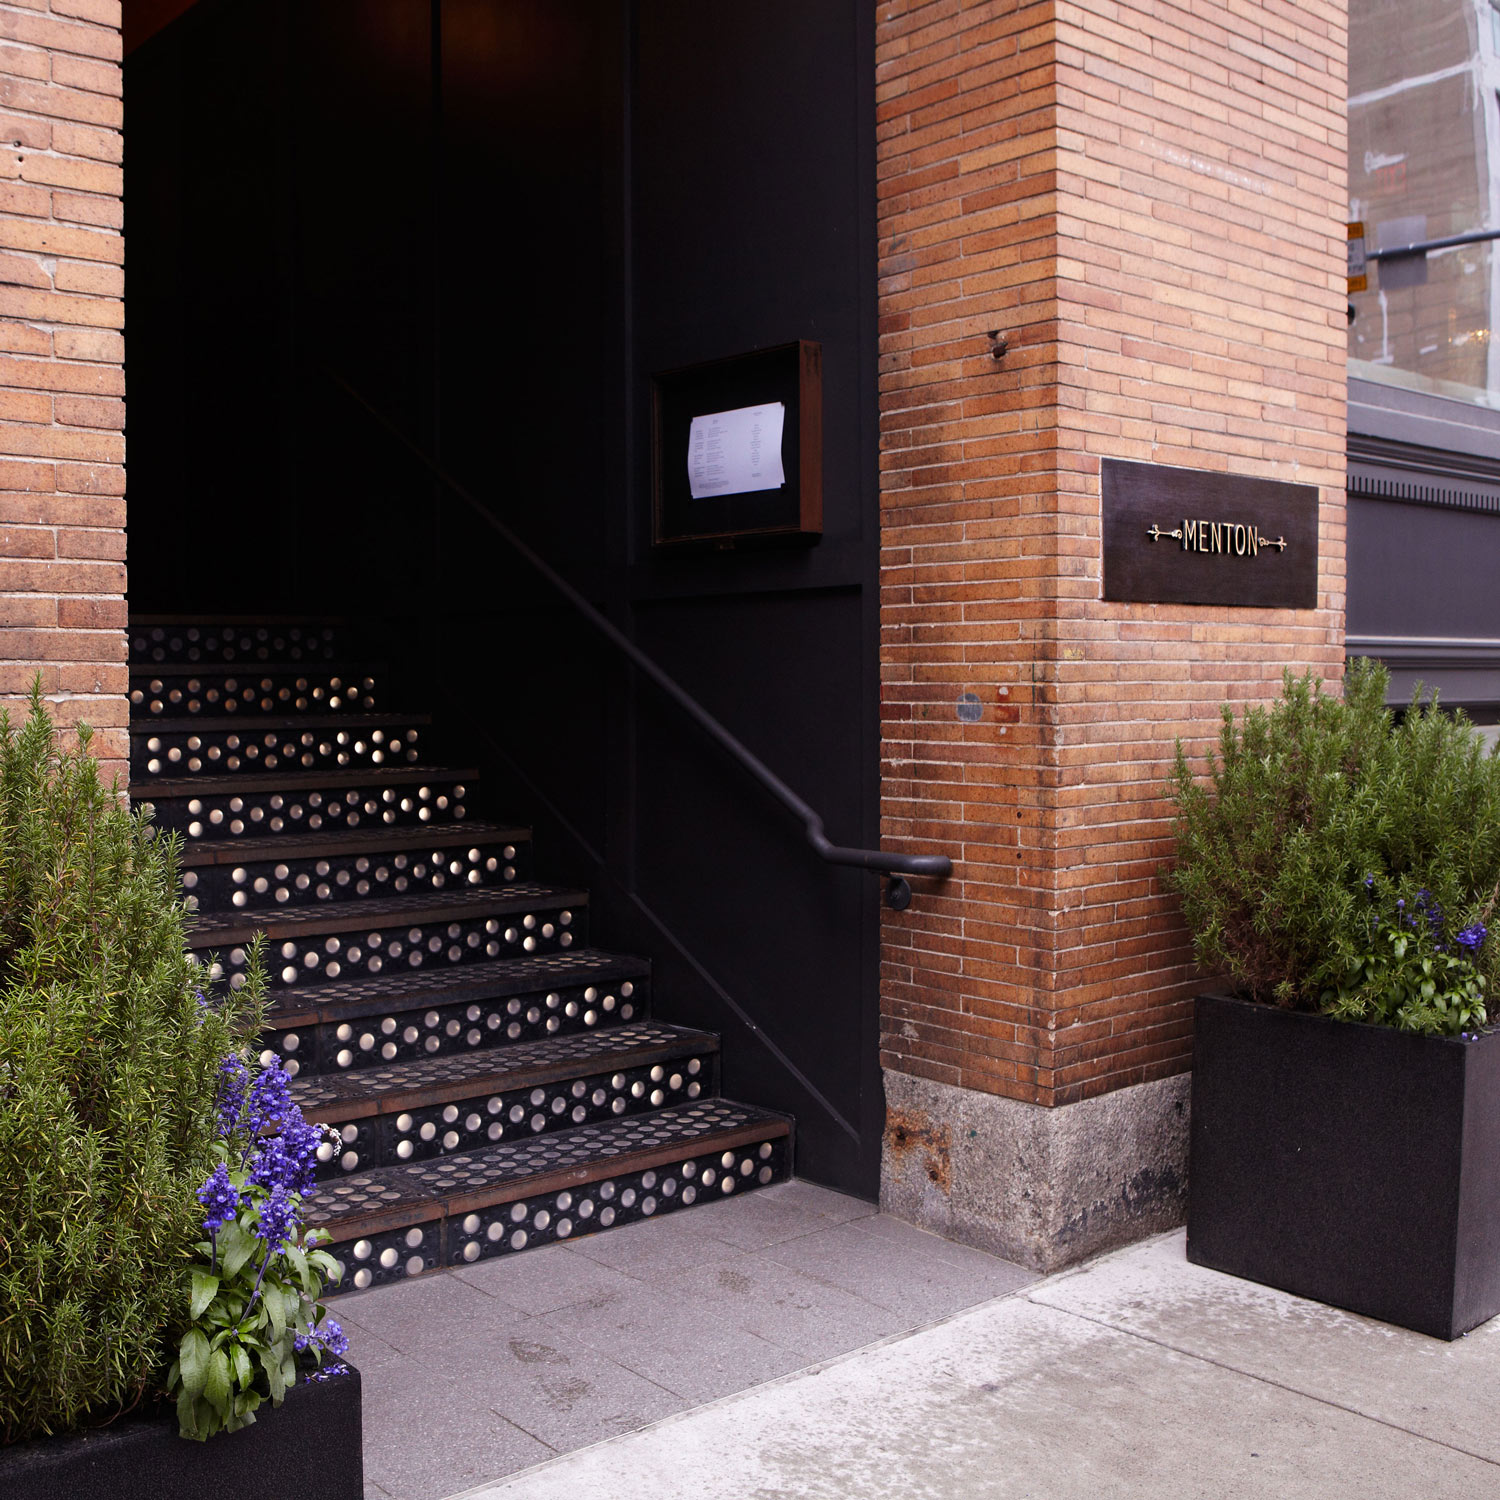 menton_boston_restaurant_exterior_w.jpg